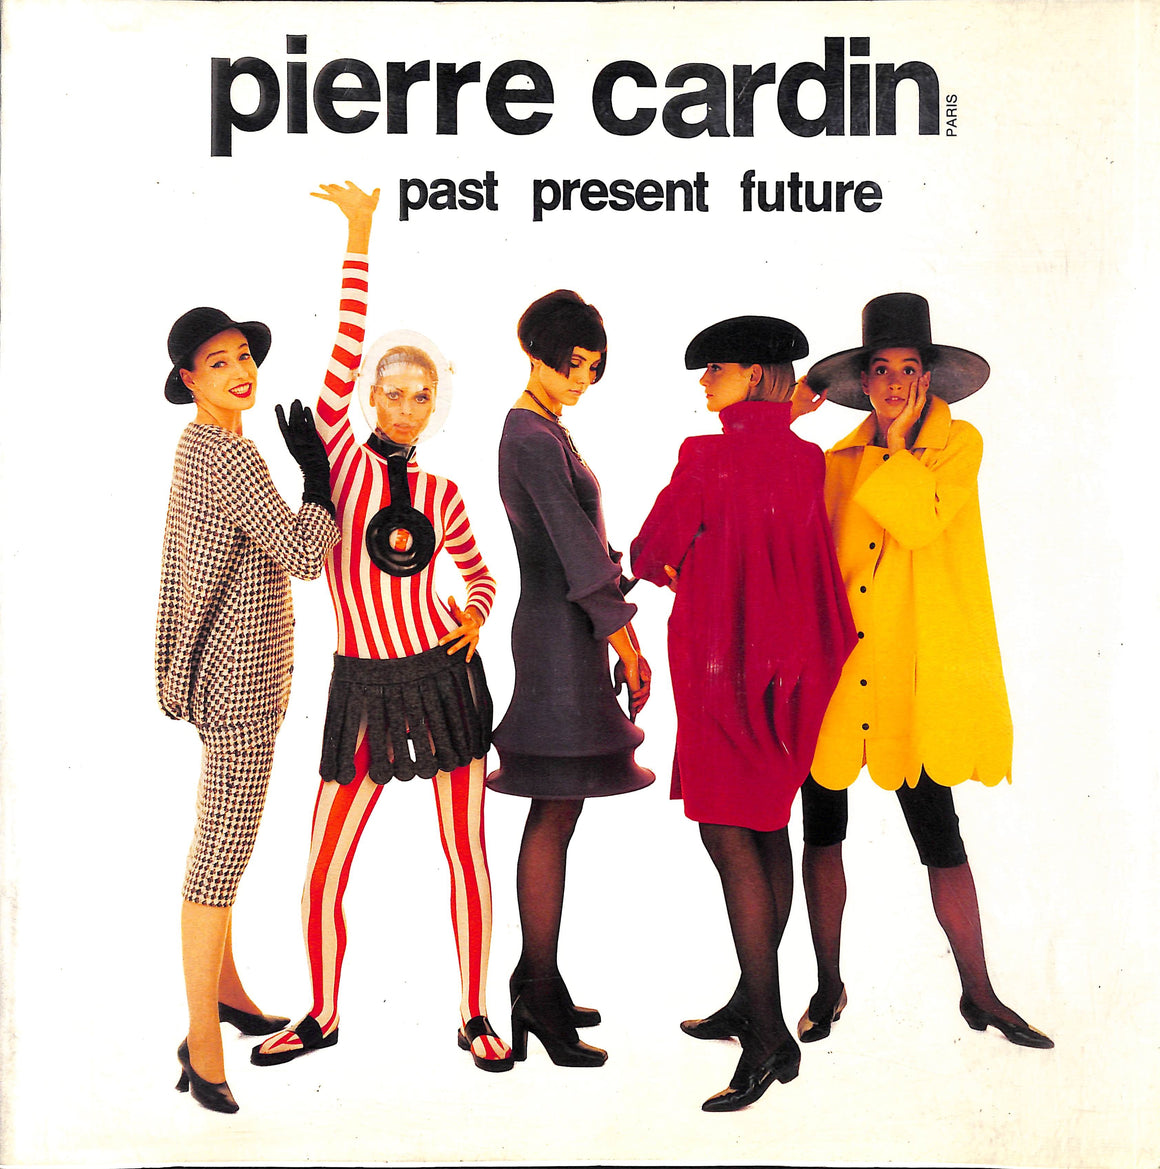 Pierre Cardin: Past Present Future